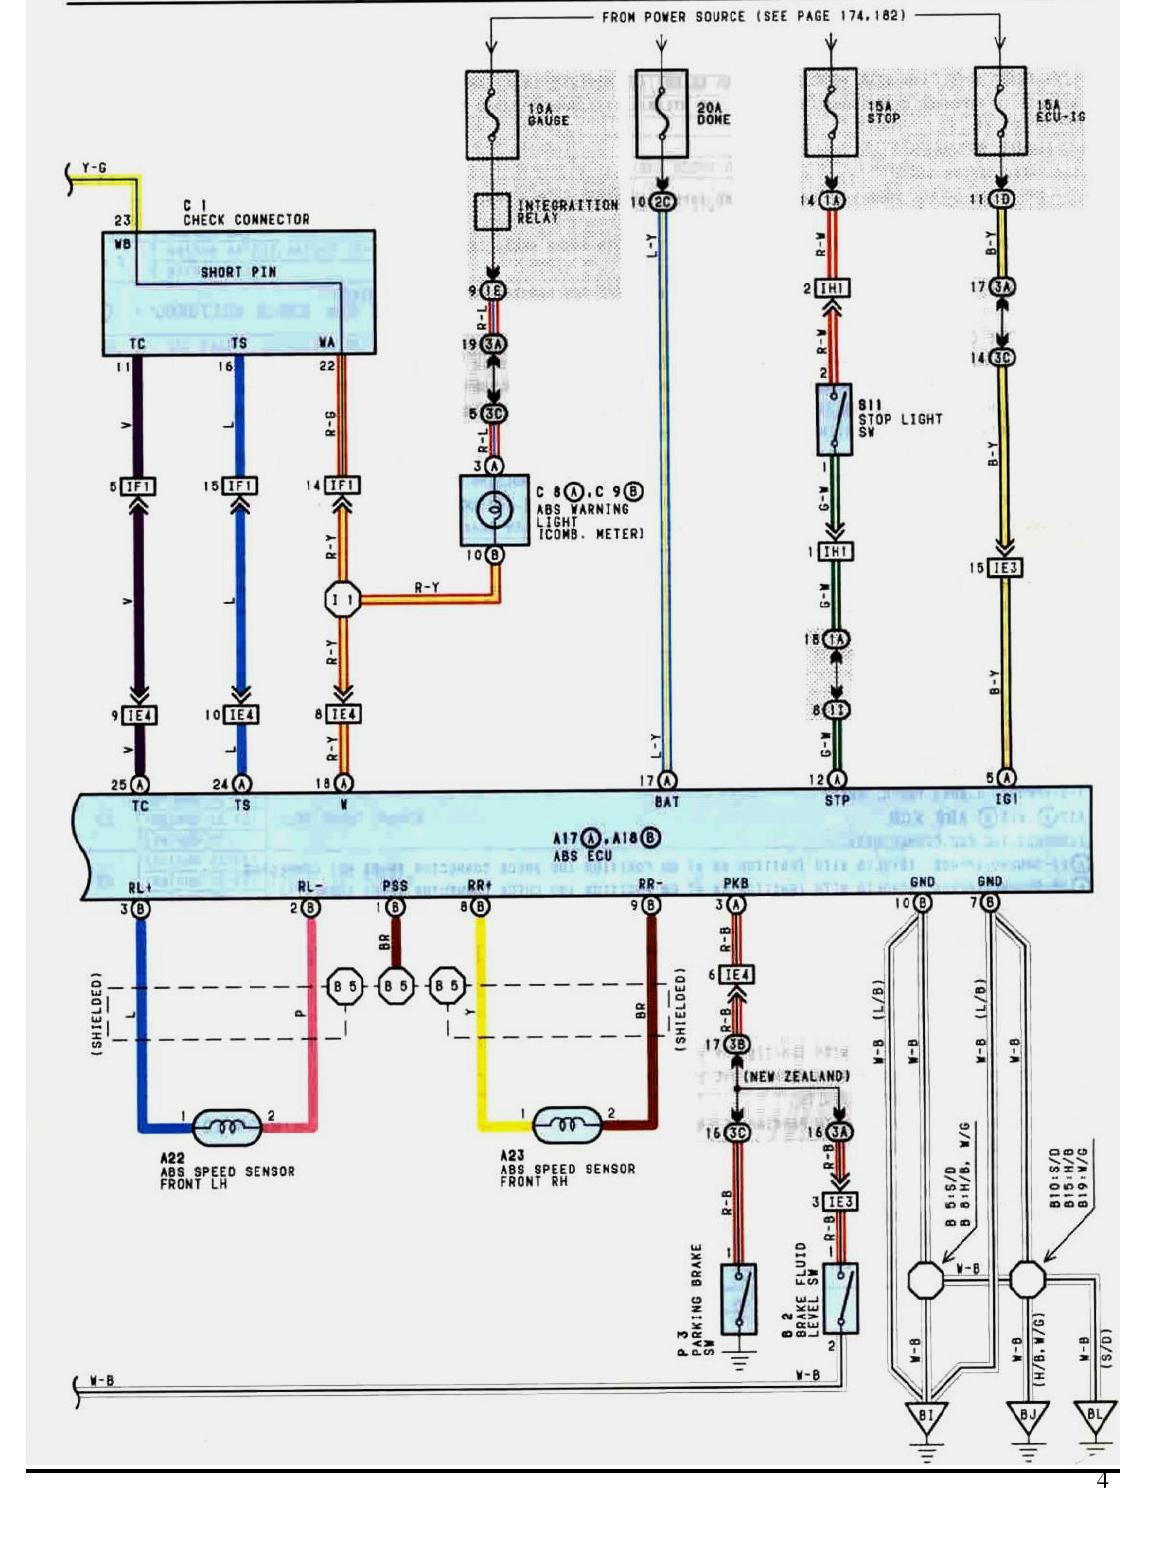 Rover 75 Abs Wiring Diagram Kz1000 And Body Electrical System